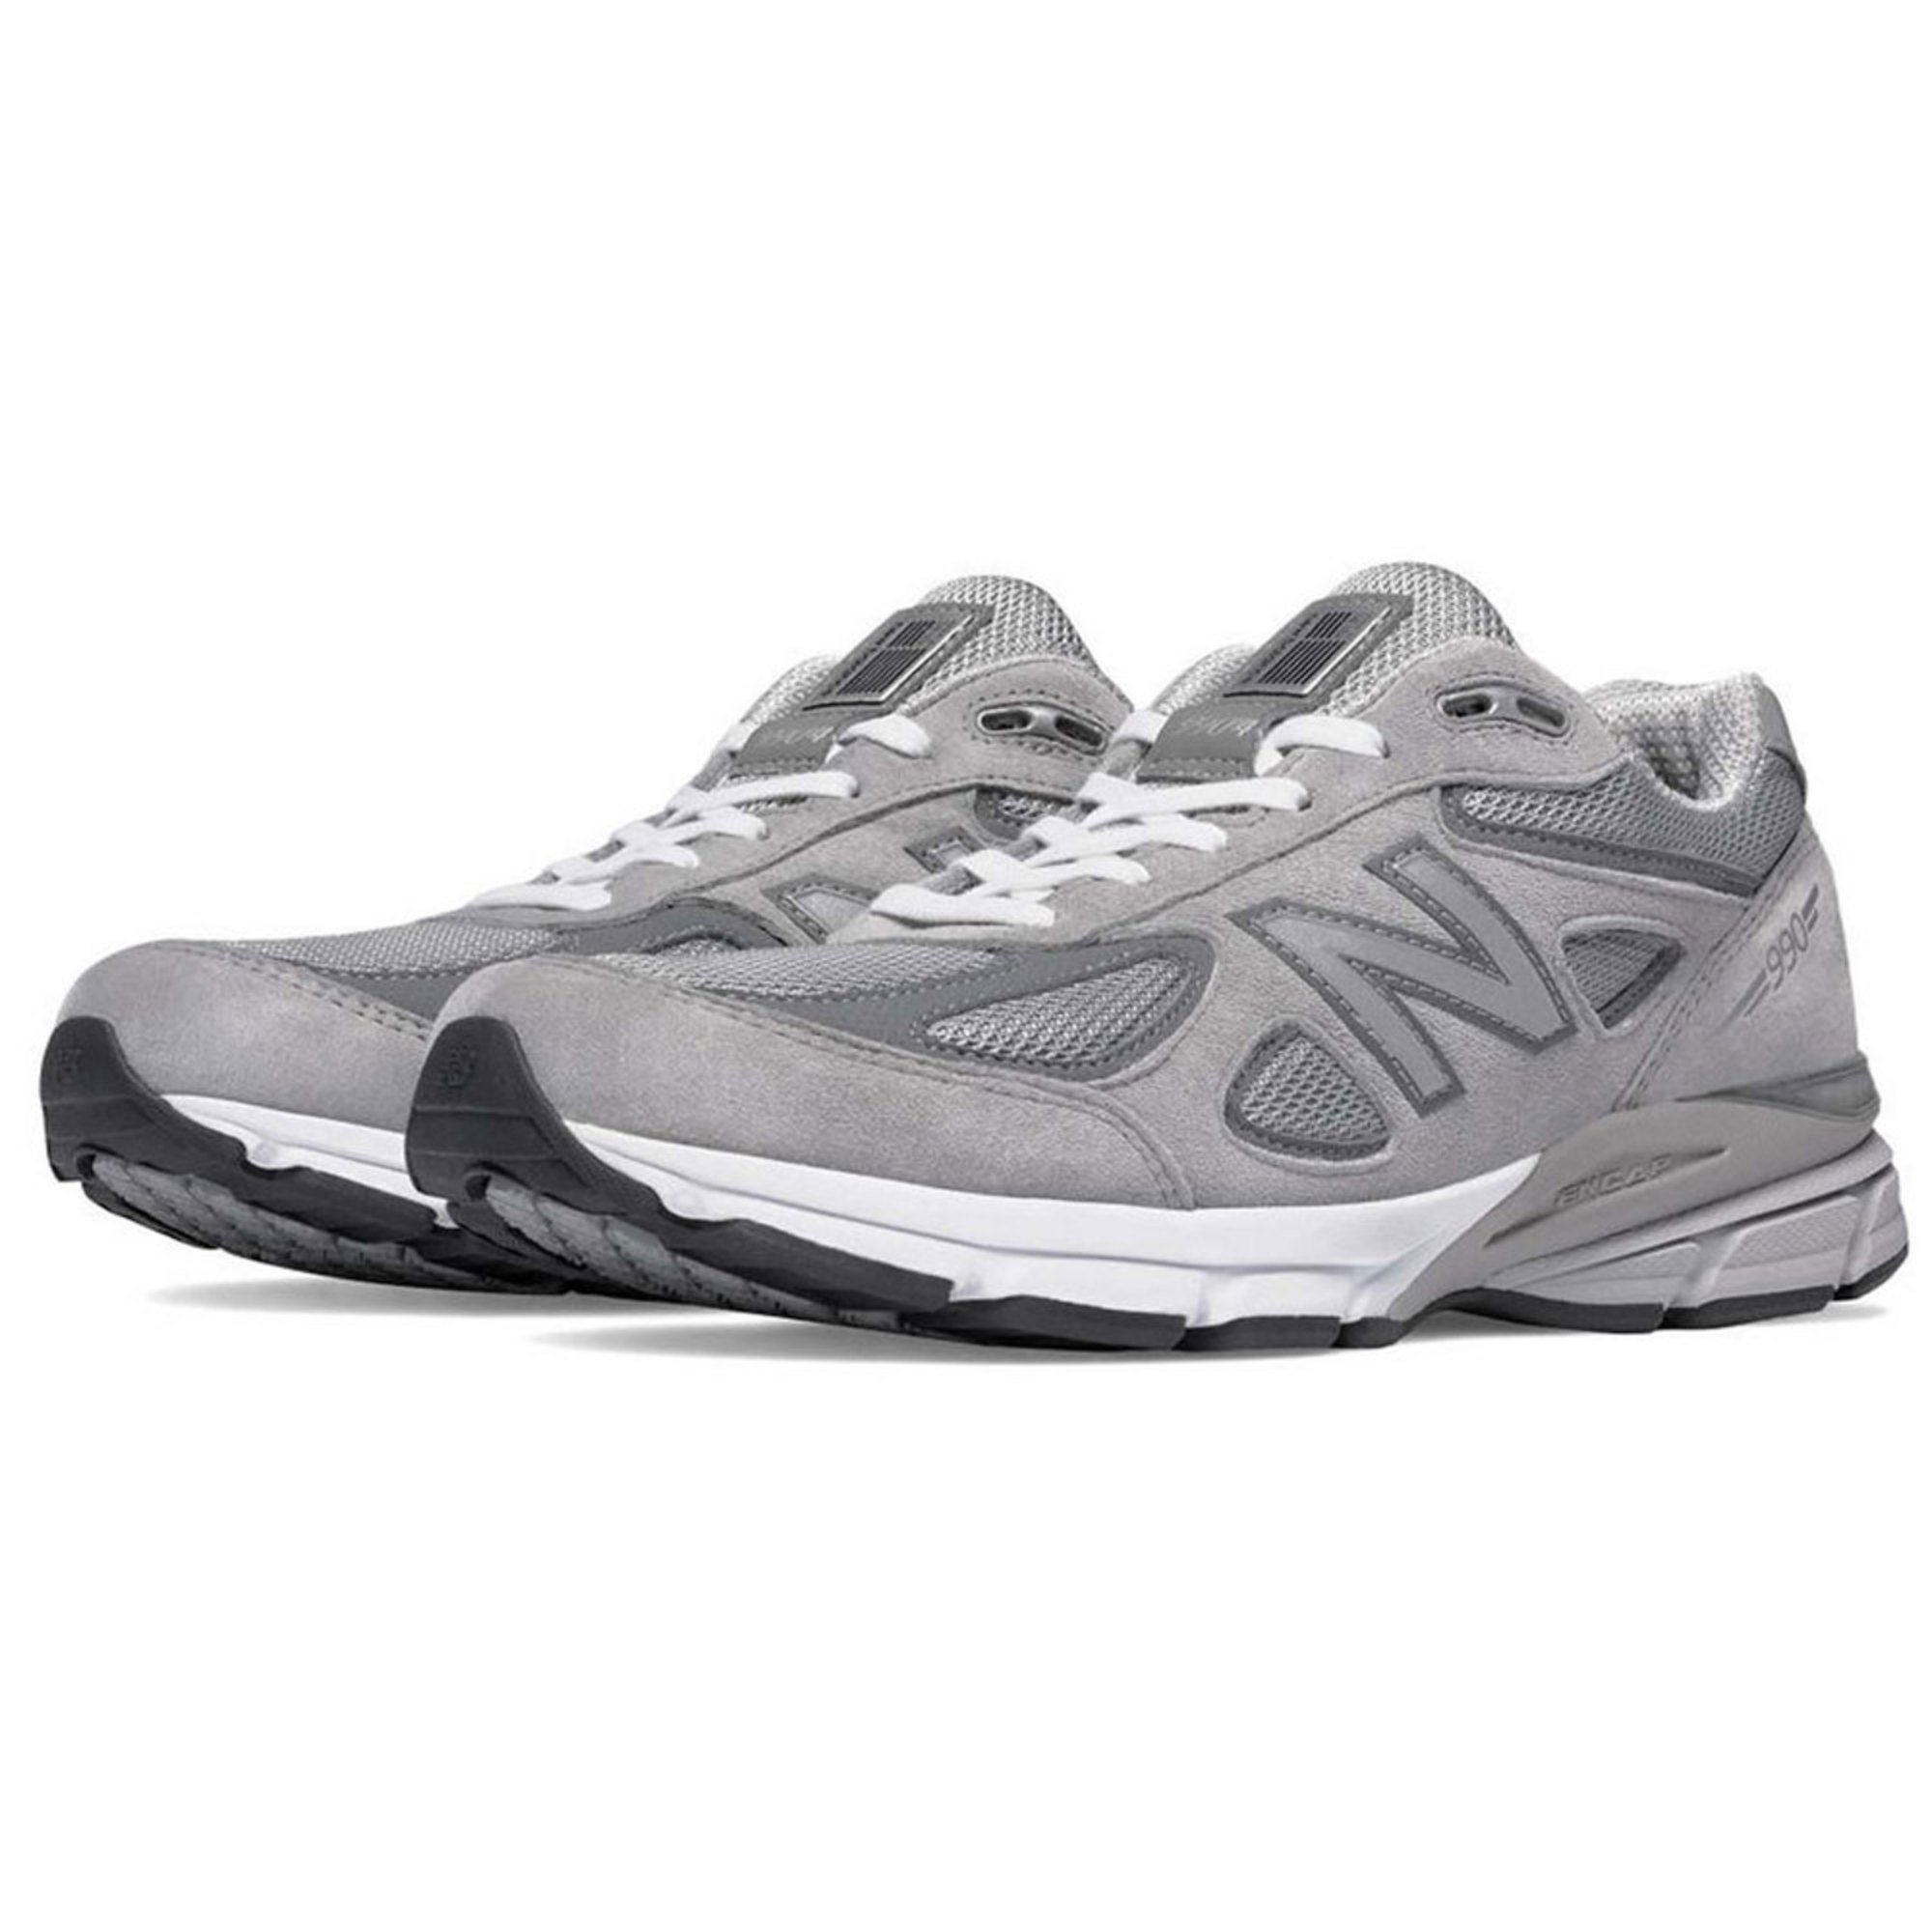 e4d57b7f New Balance Men's 990v4 Running Shoe | Men's Running Shoes | Shoes ...